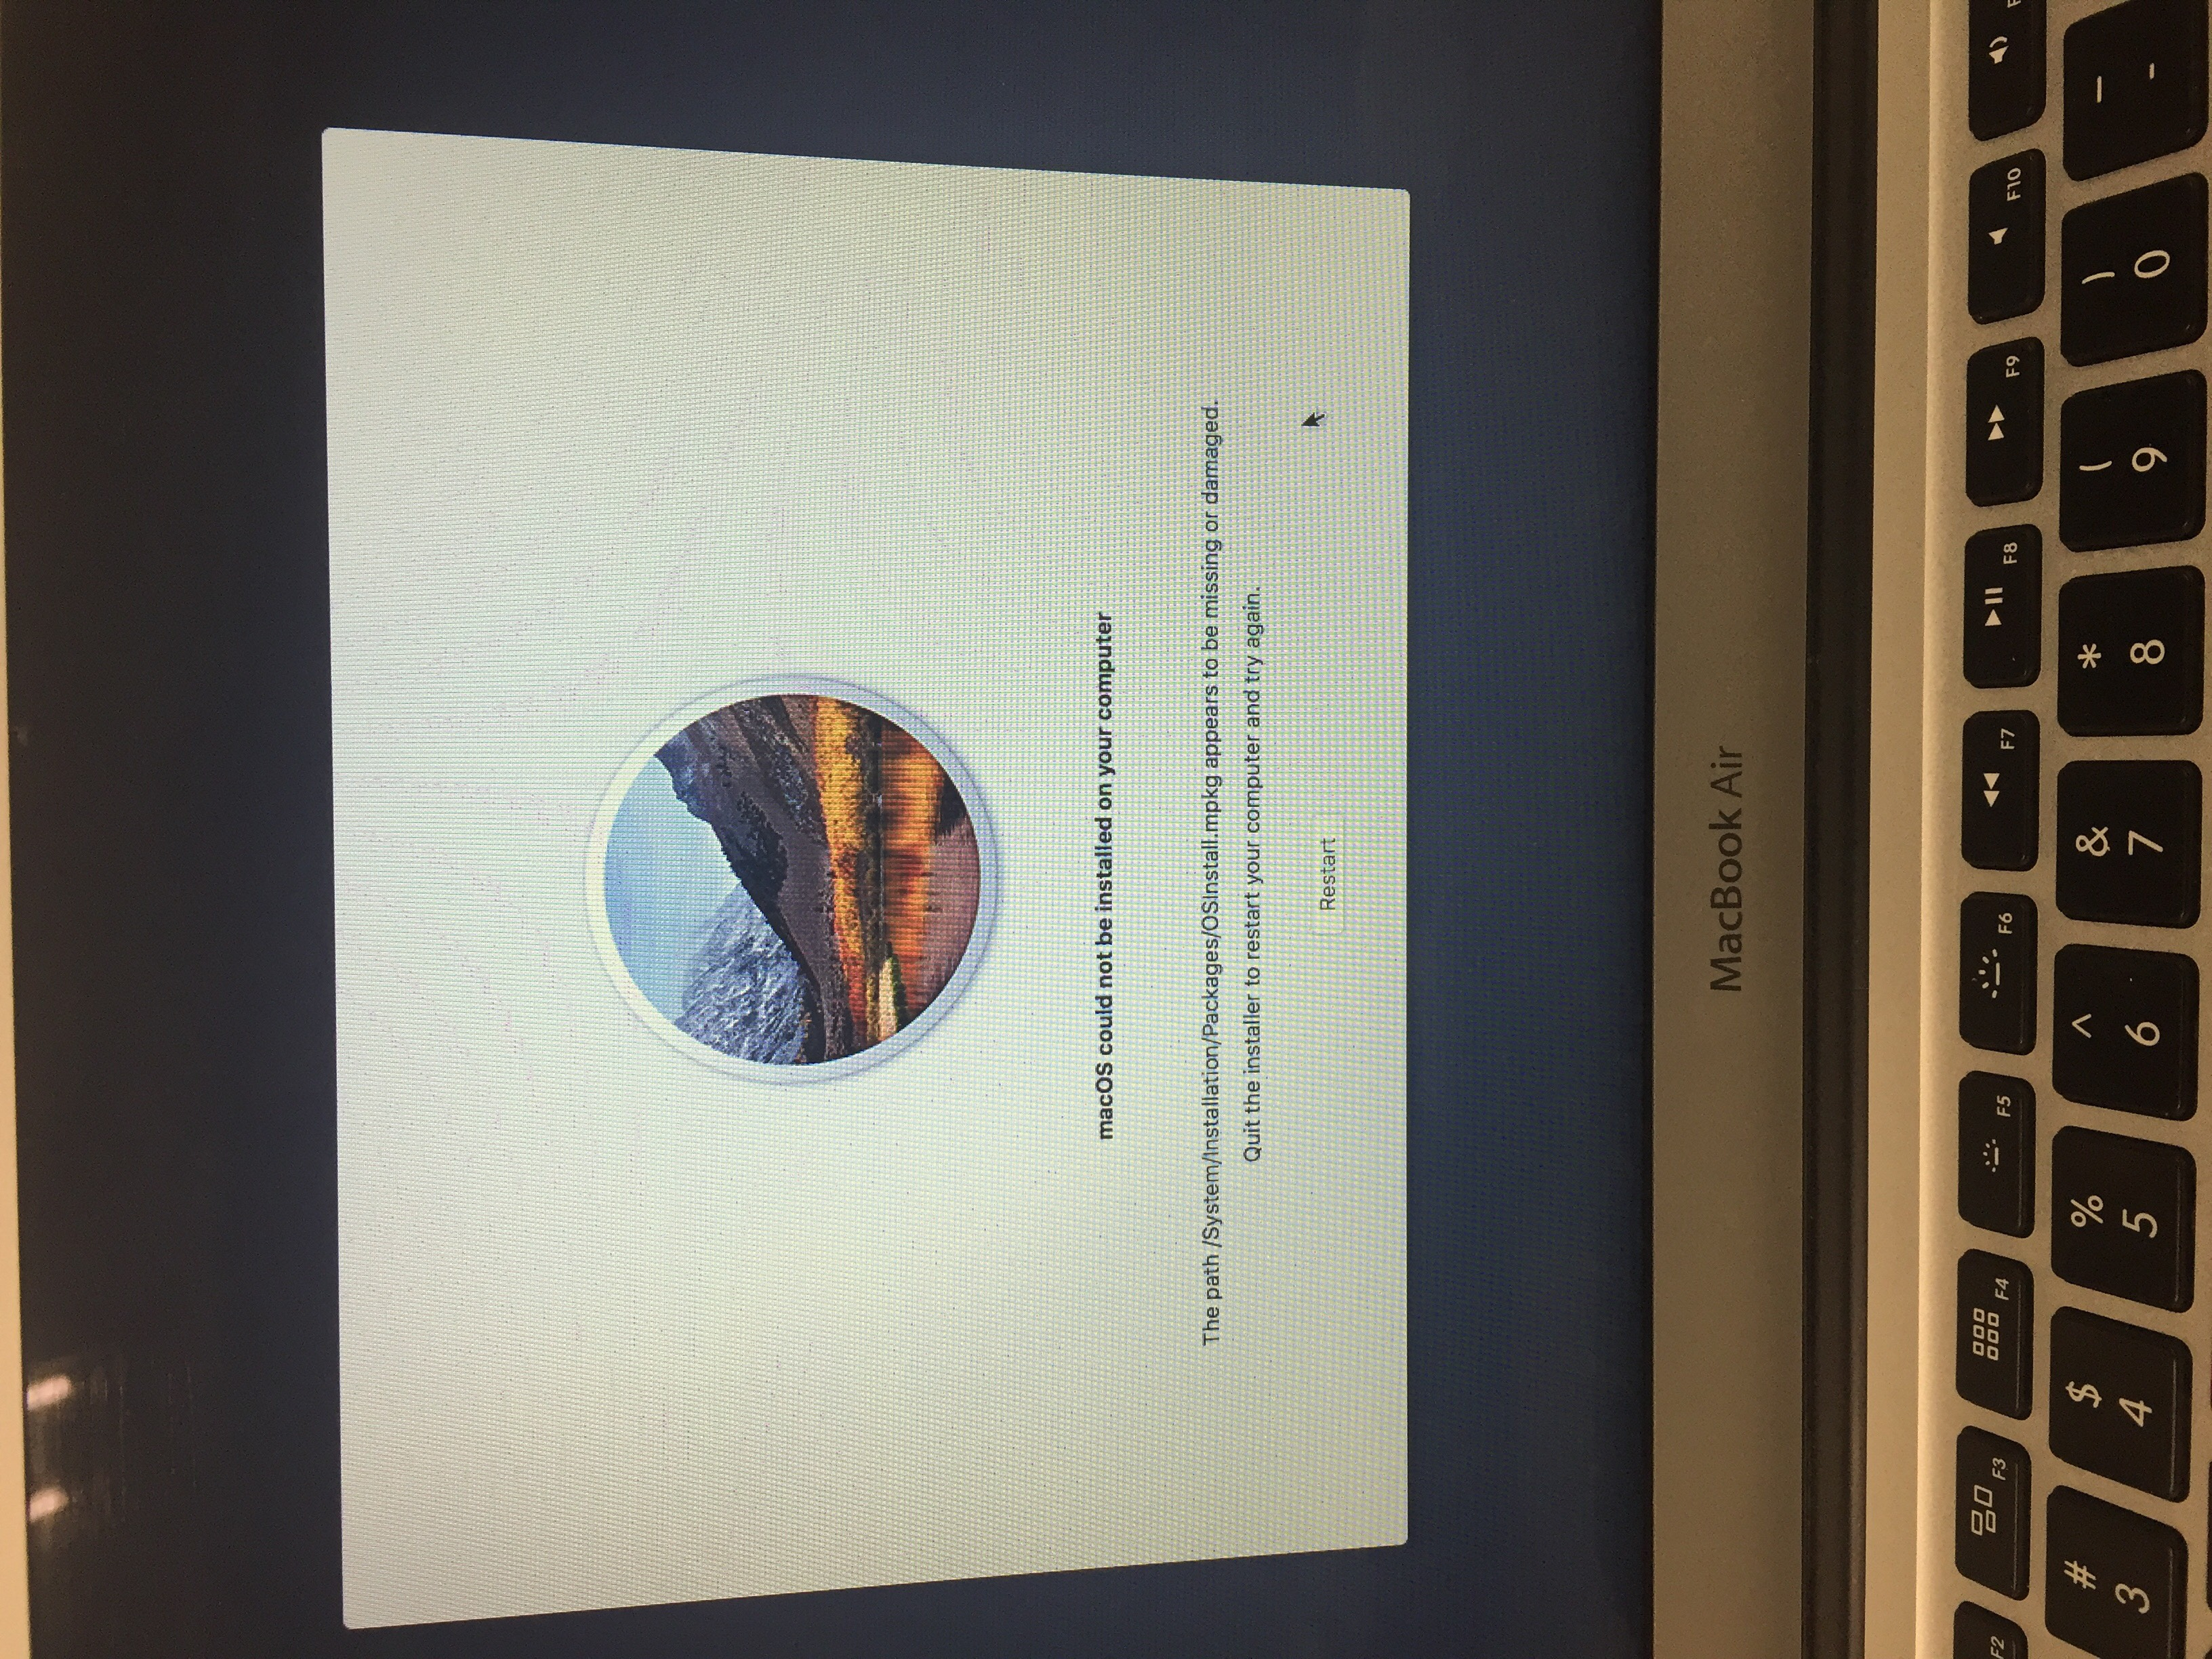 macOS High Sierra installer attempting to run after successful